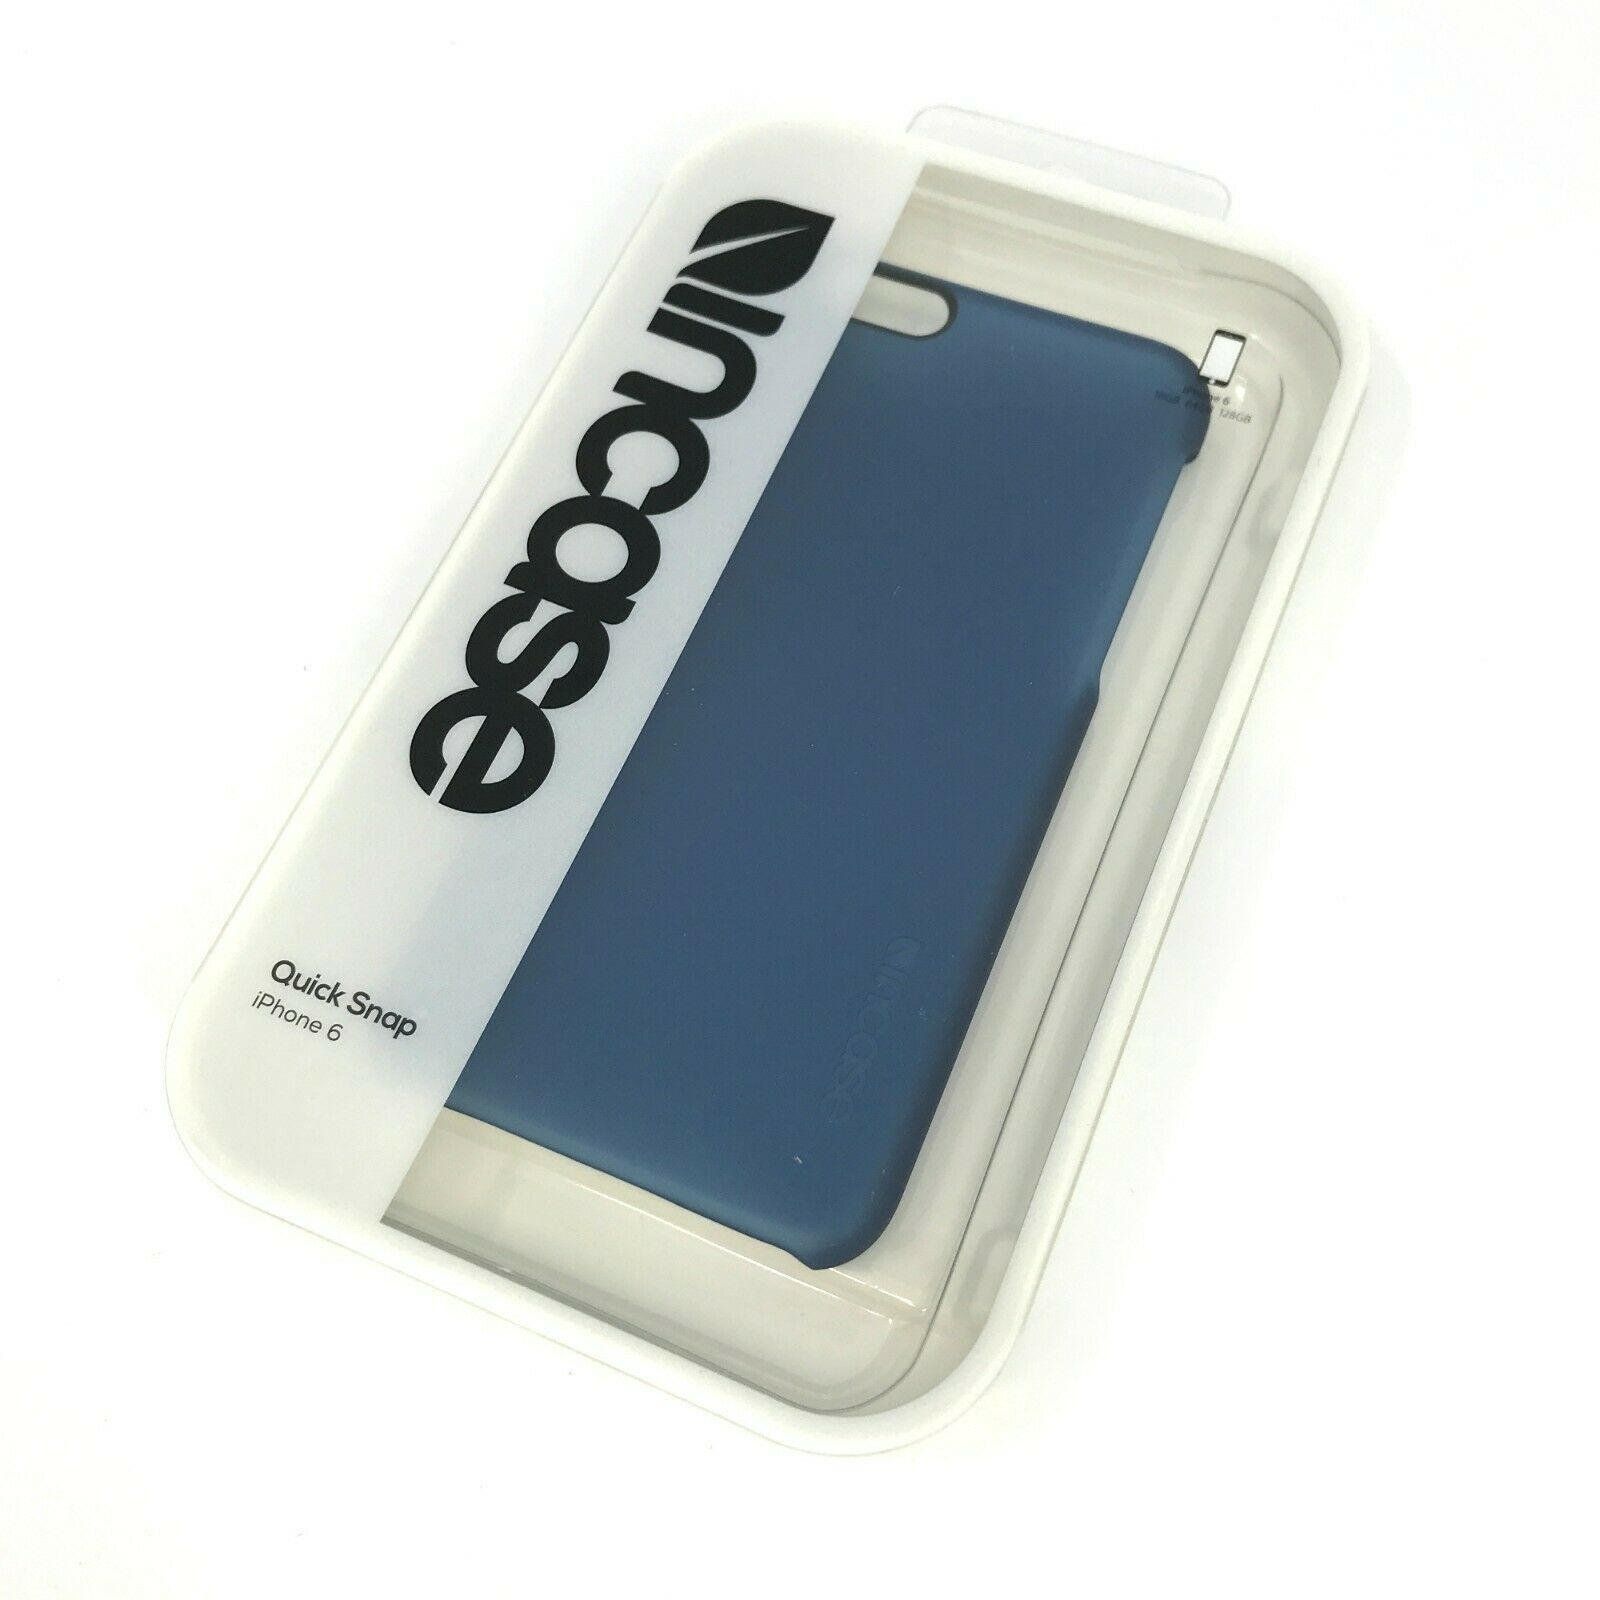 Primary image for Incase Quick Snap Case For iPhone 6 Color - Blue #6554